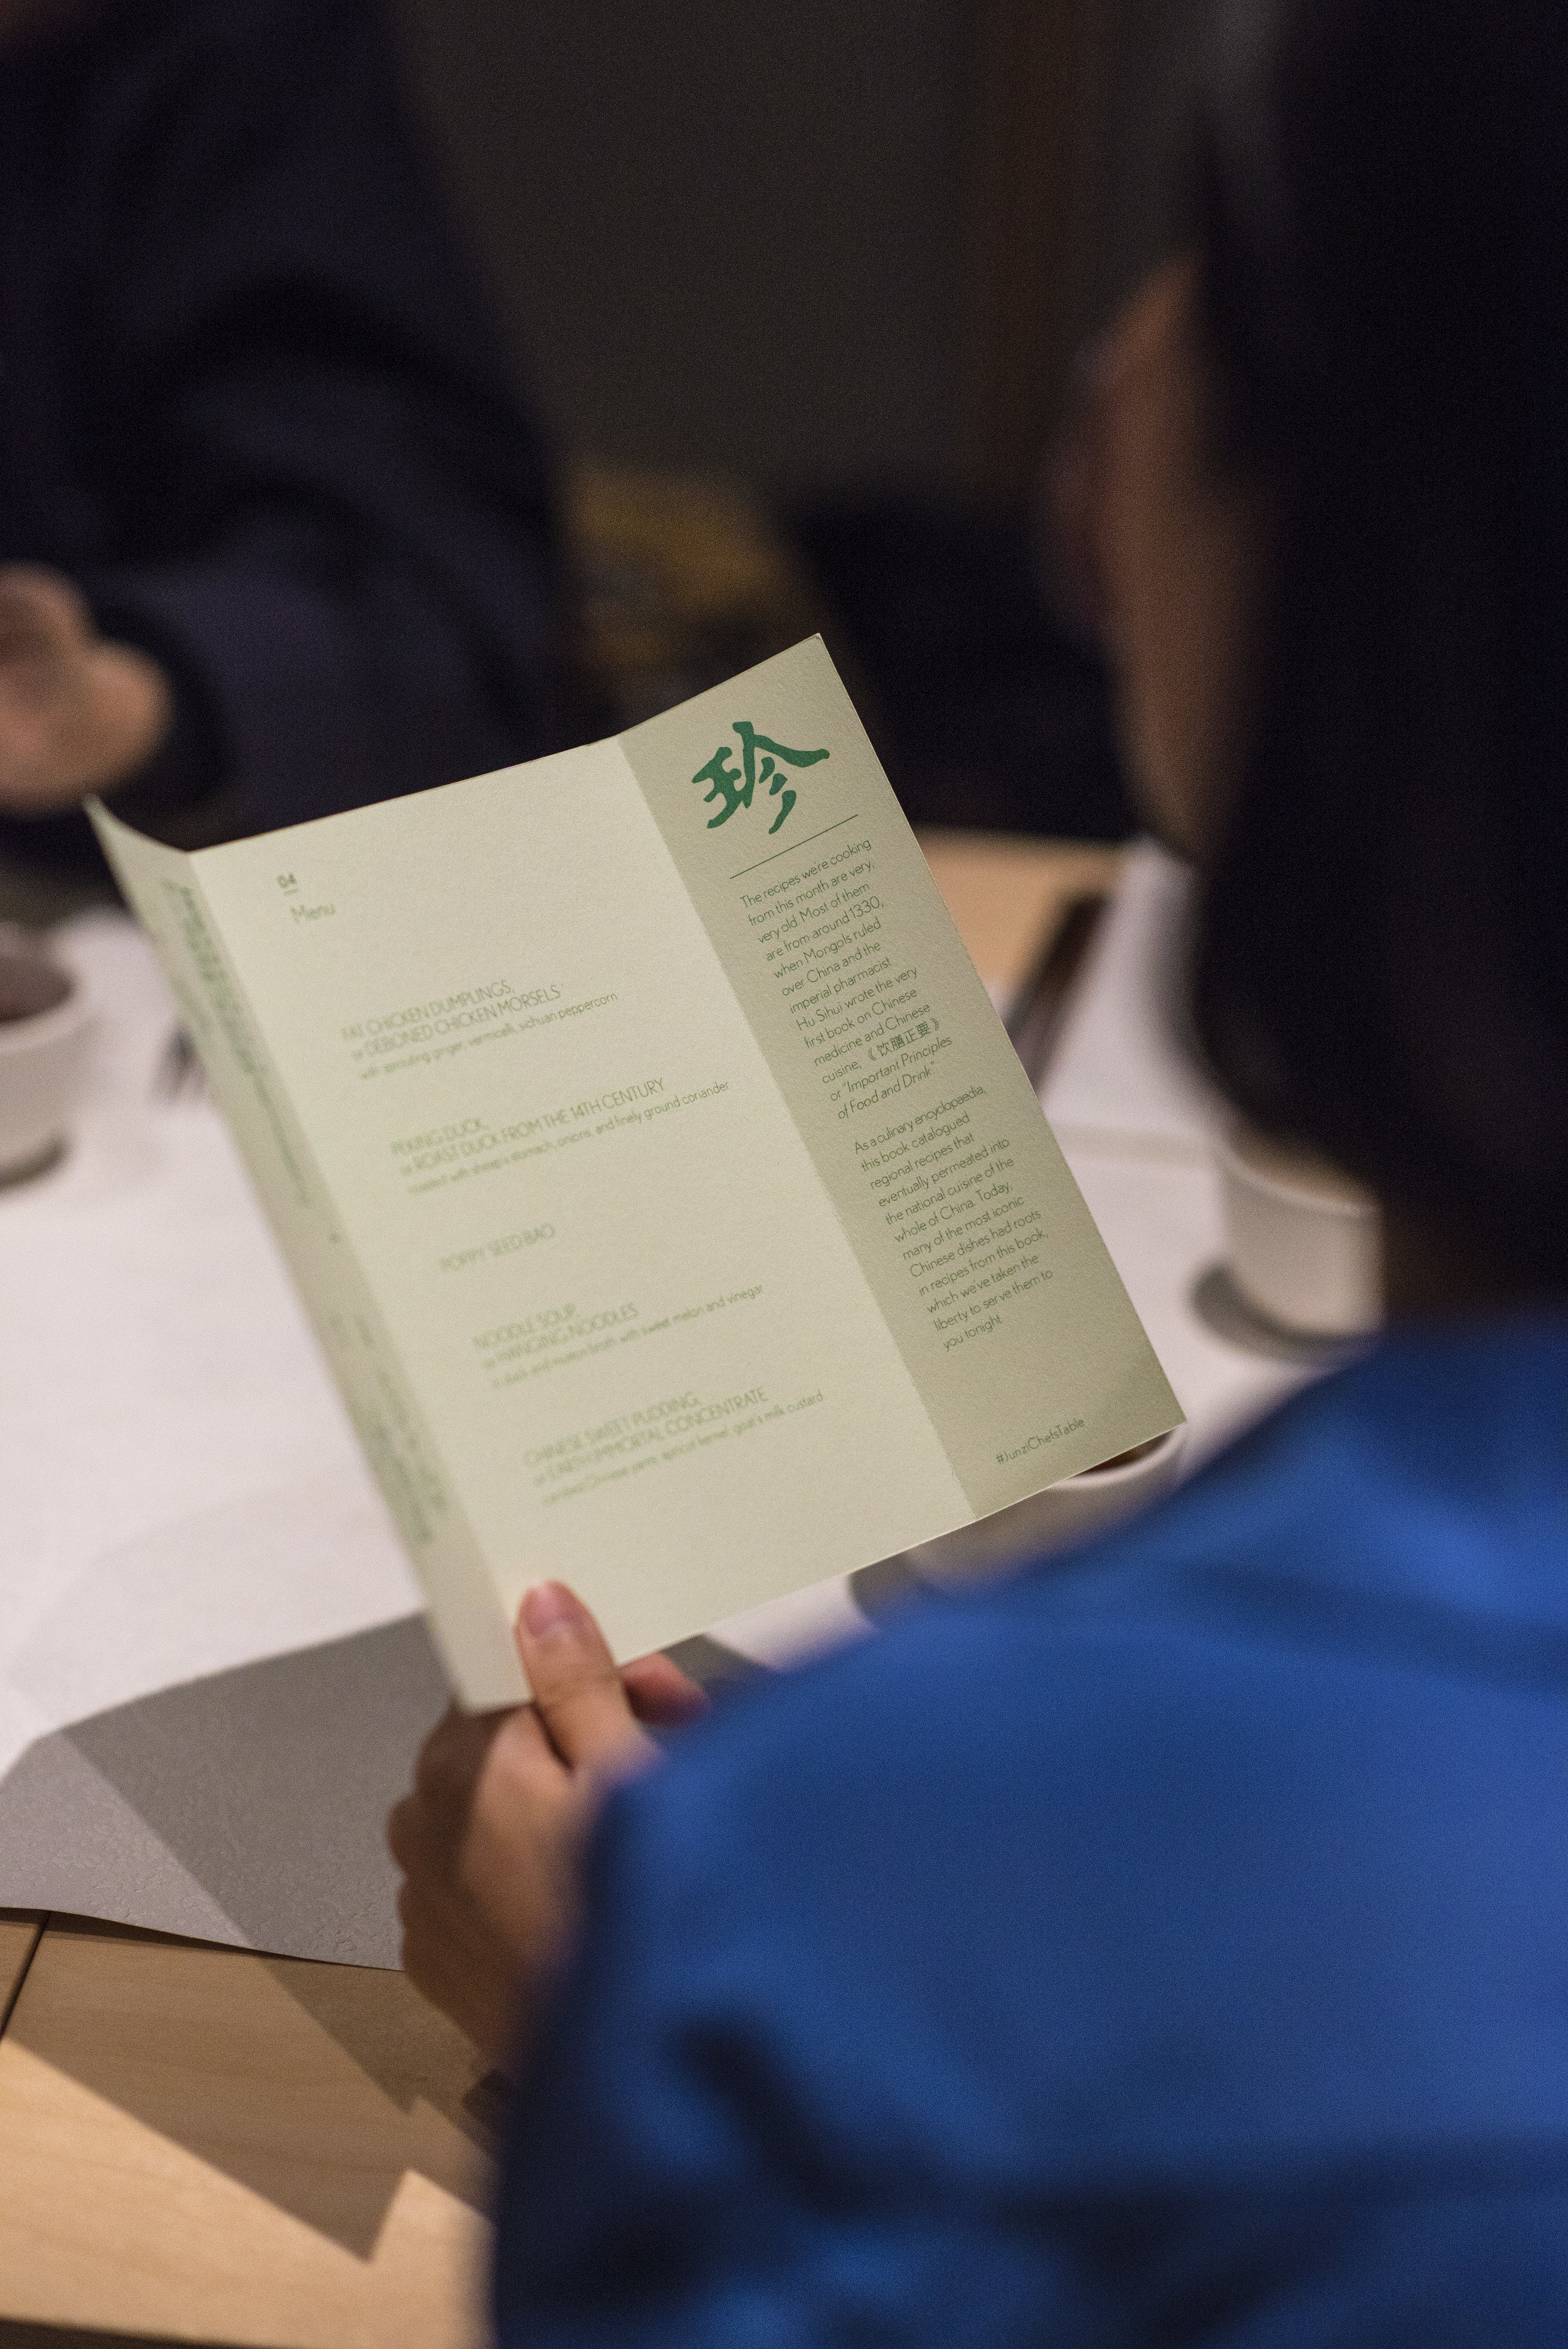 Each menu is designed and printed in-house by our creative team, inspired by the theme of the month.